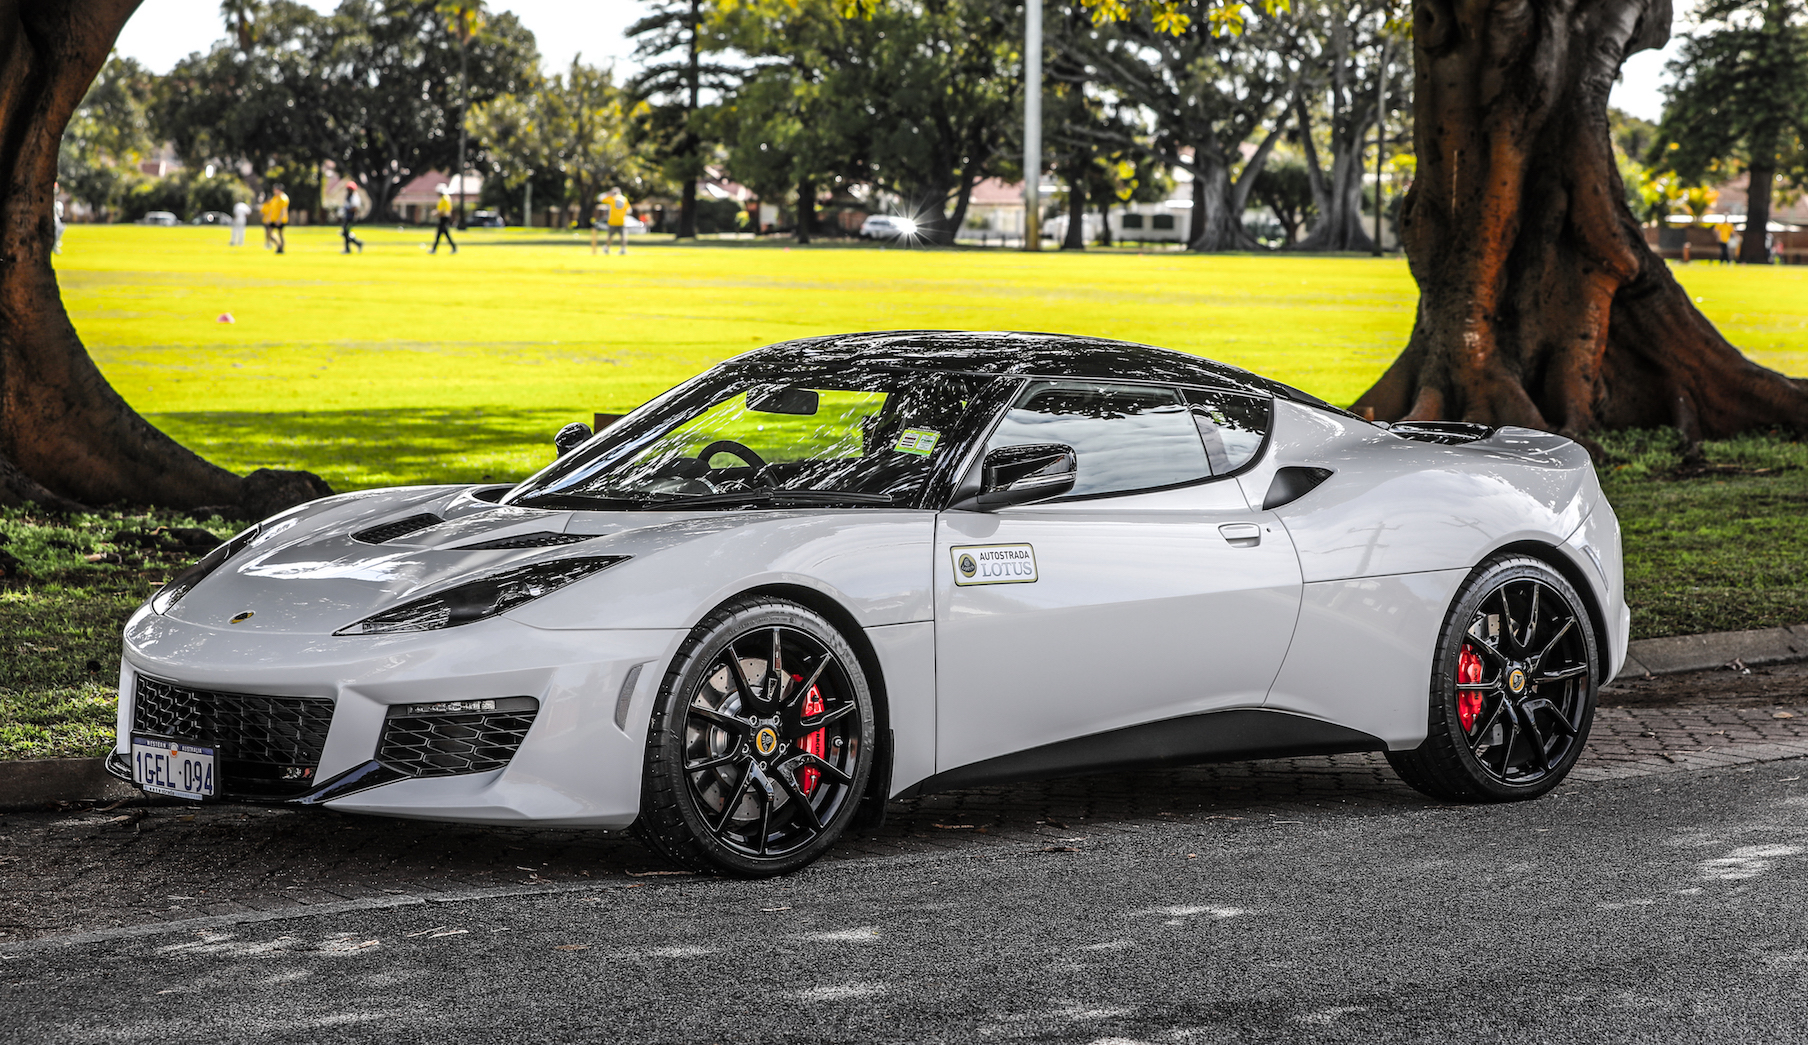 Lotus Evora 400 for sale Perth